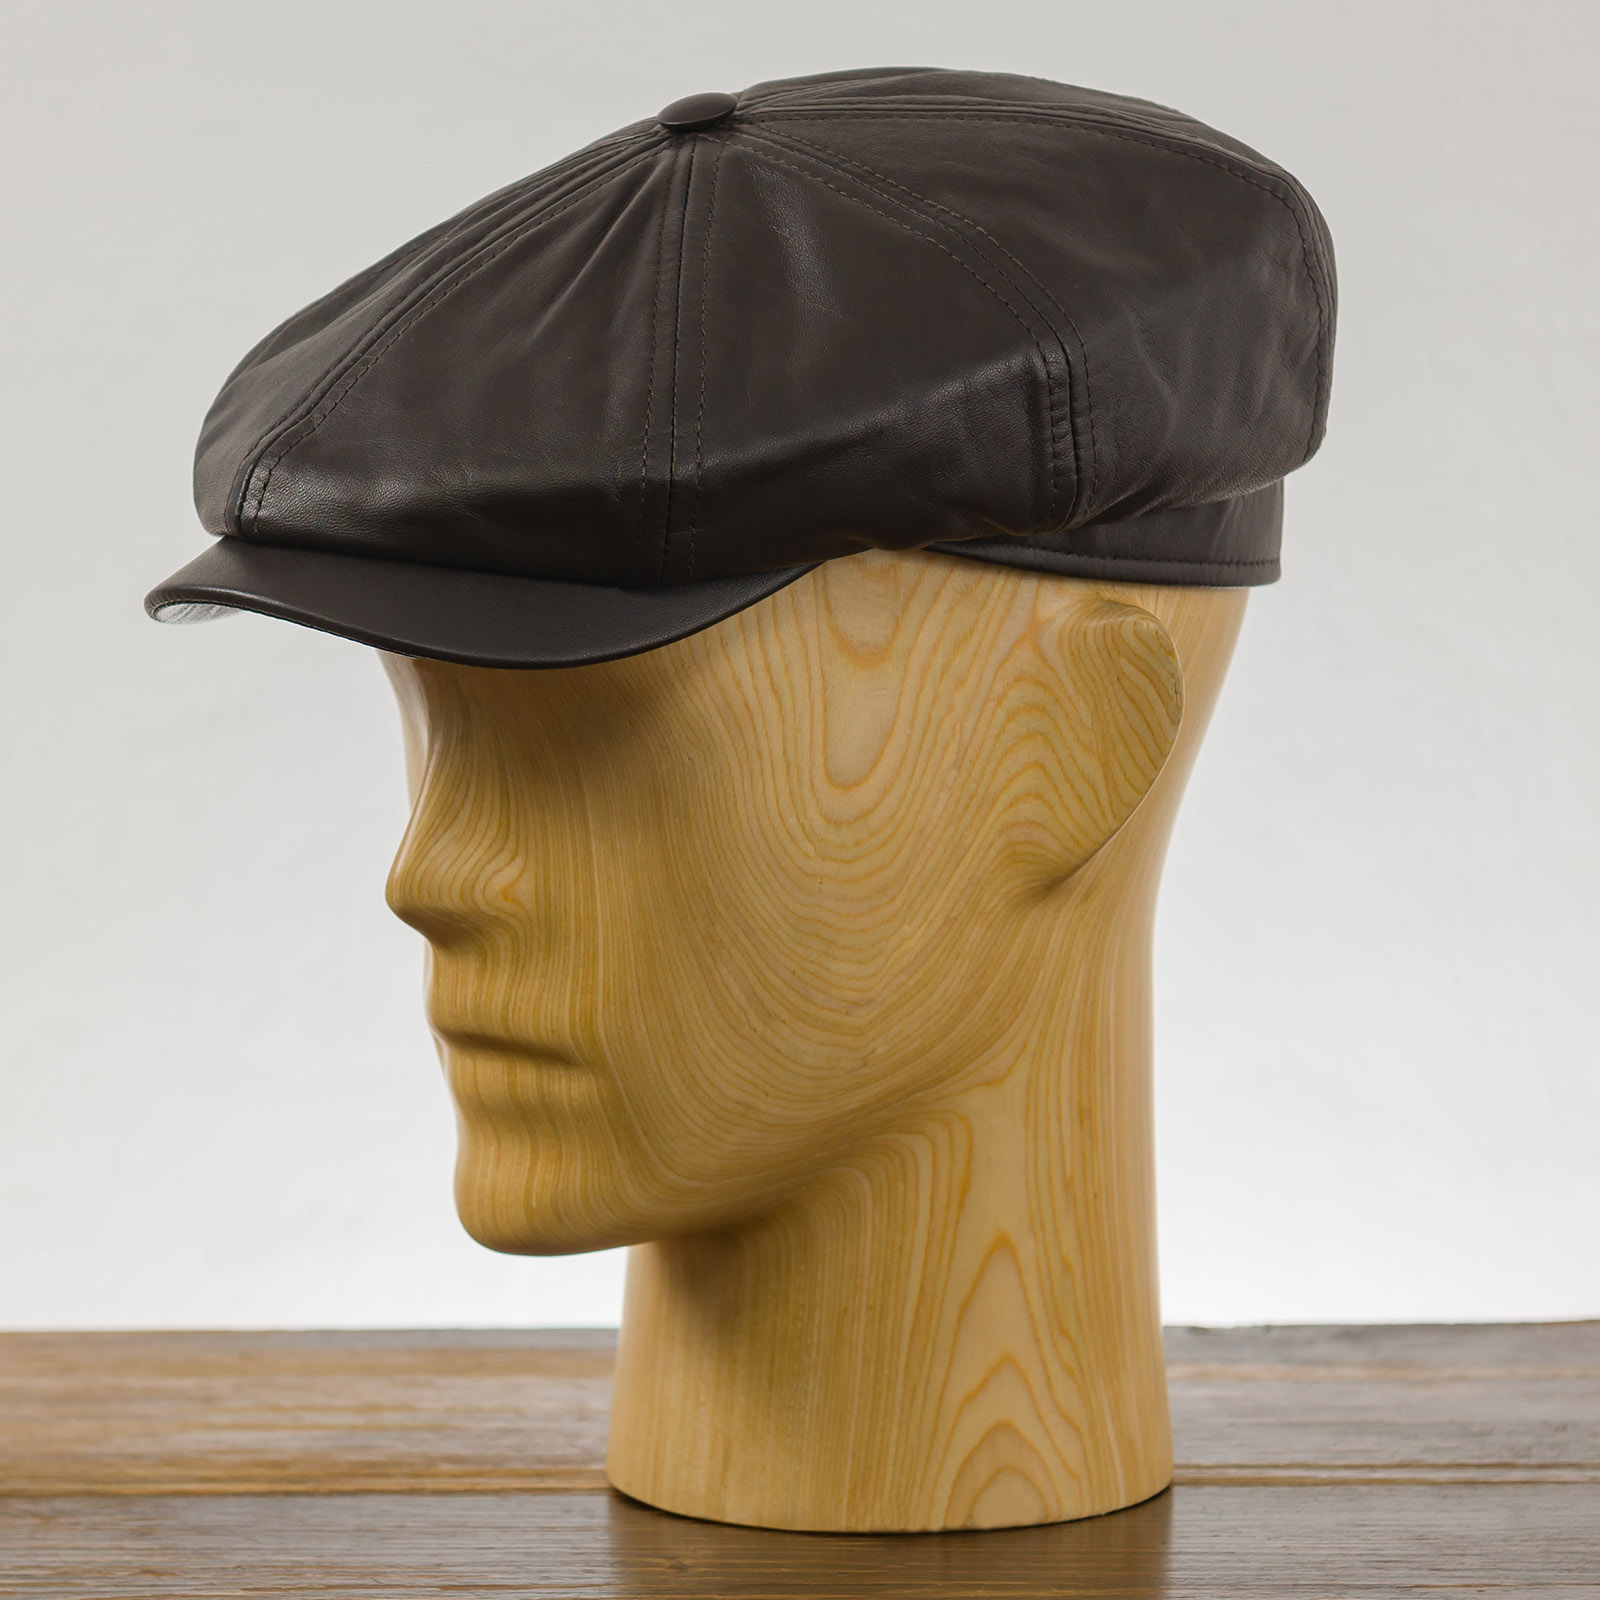 Genuine Leather Gatsby baker boy hat newsboy poor boy applejack paper boy ivy league